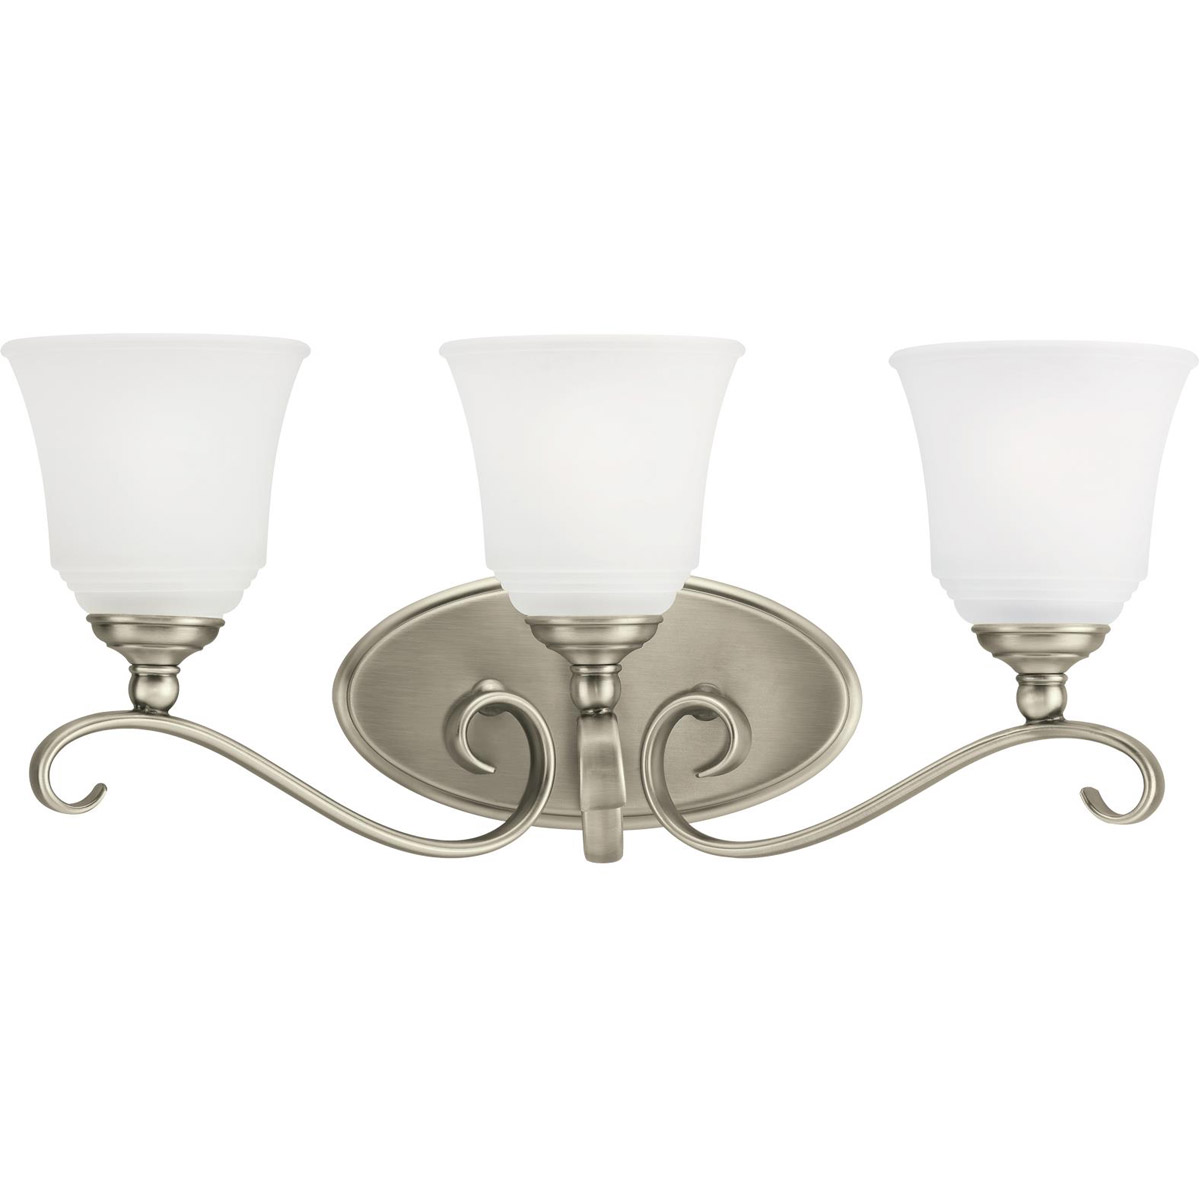 Sea Gull Lighting Parkview 3 Light Bath Vanity in Antique Brushed Nickel 44381-965 photo